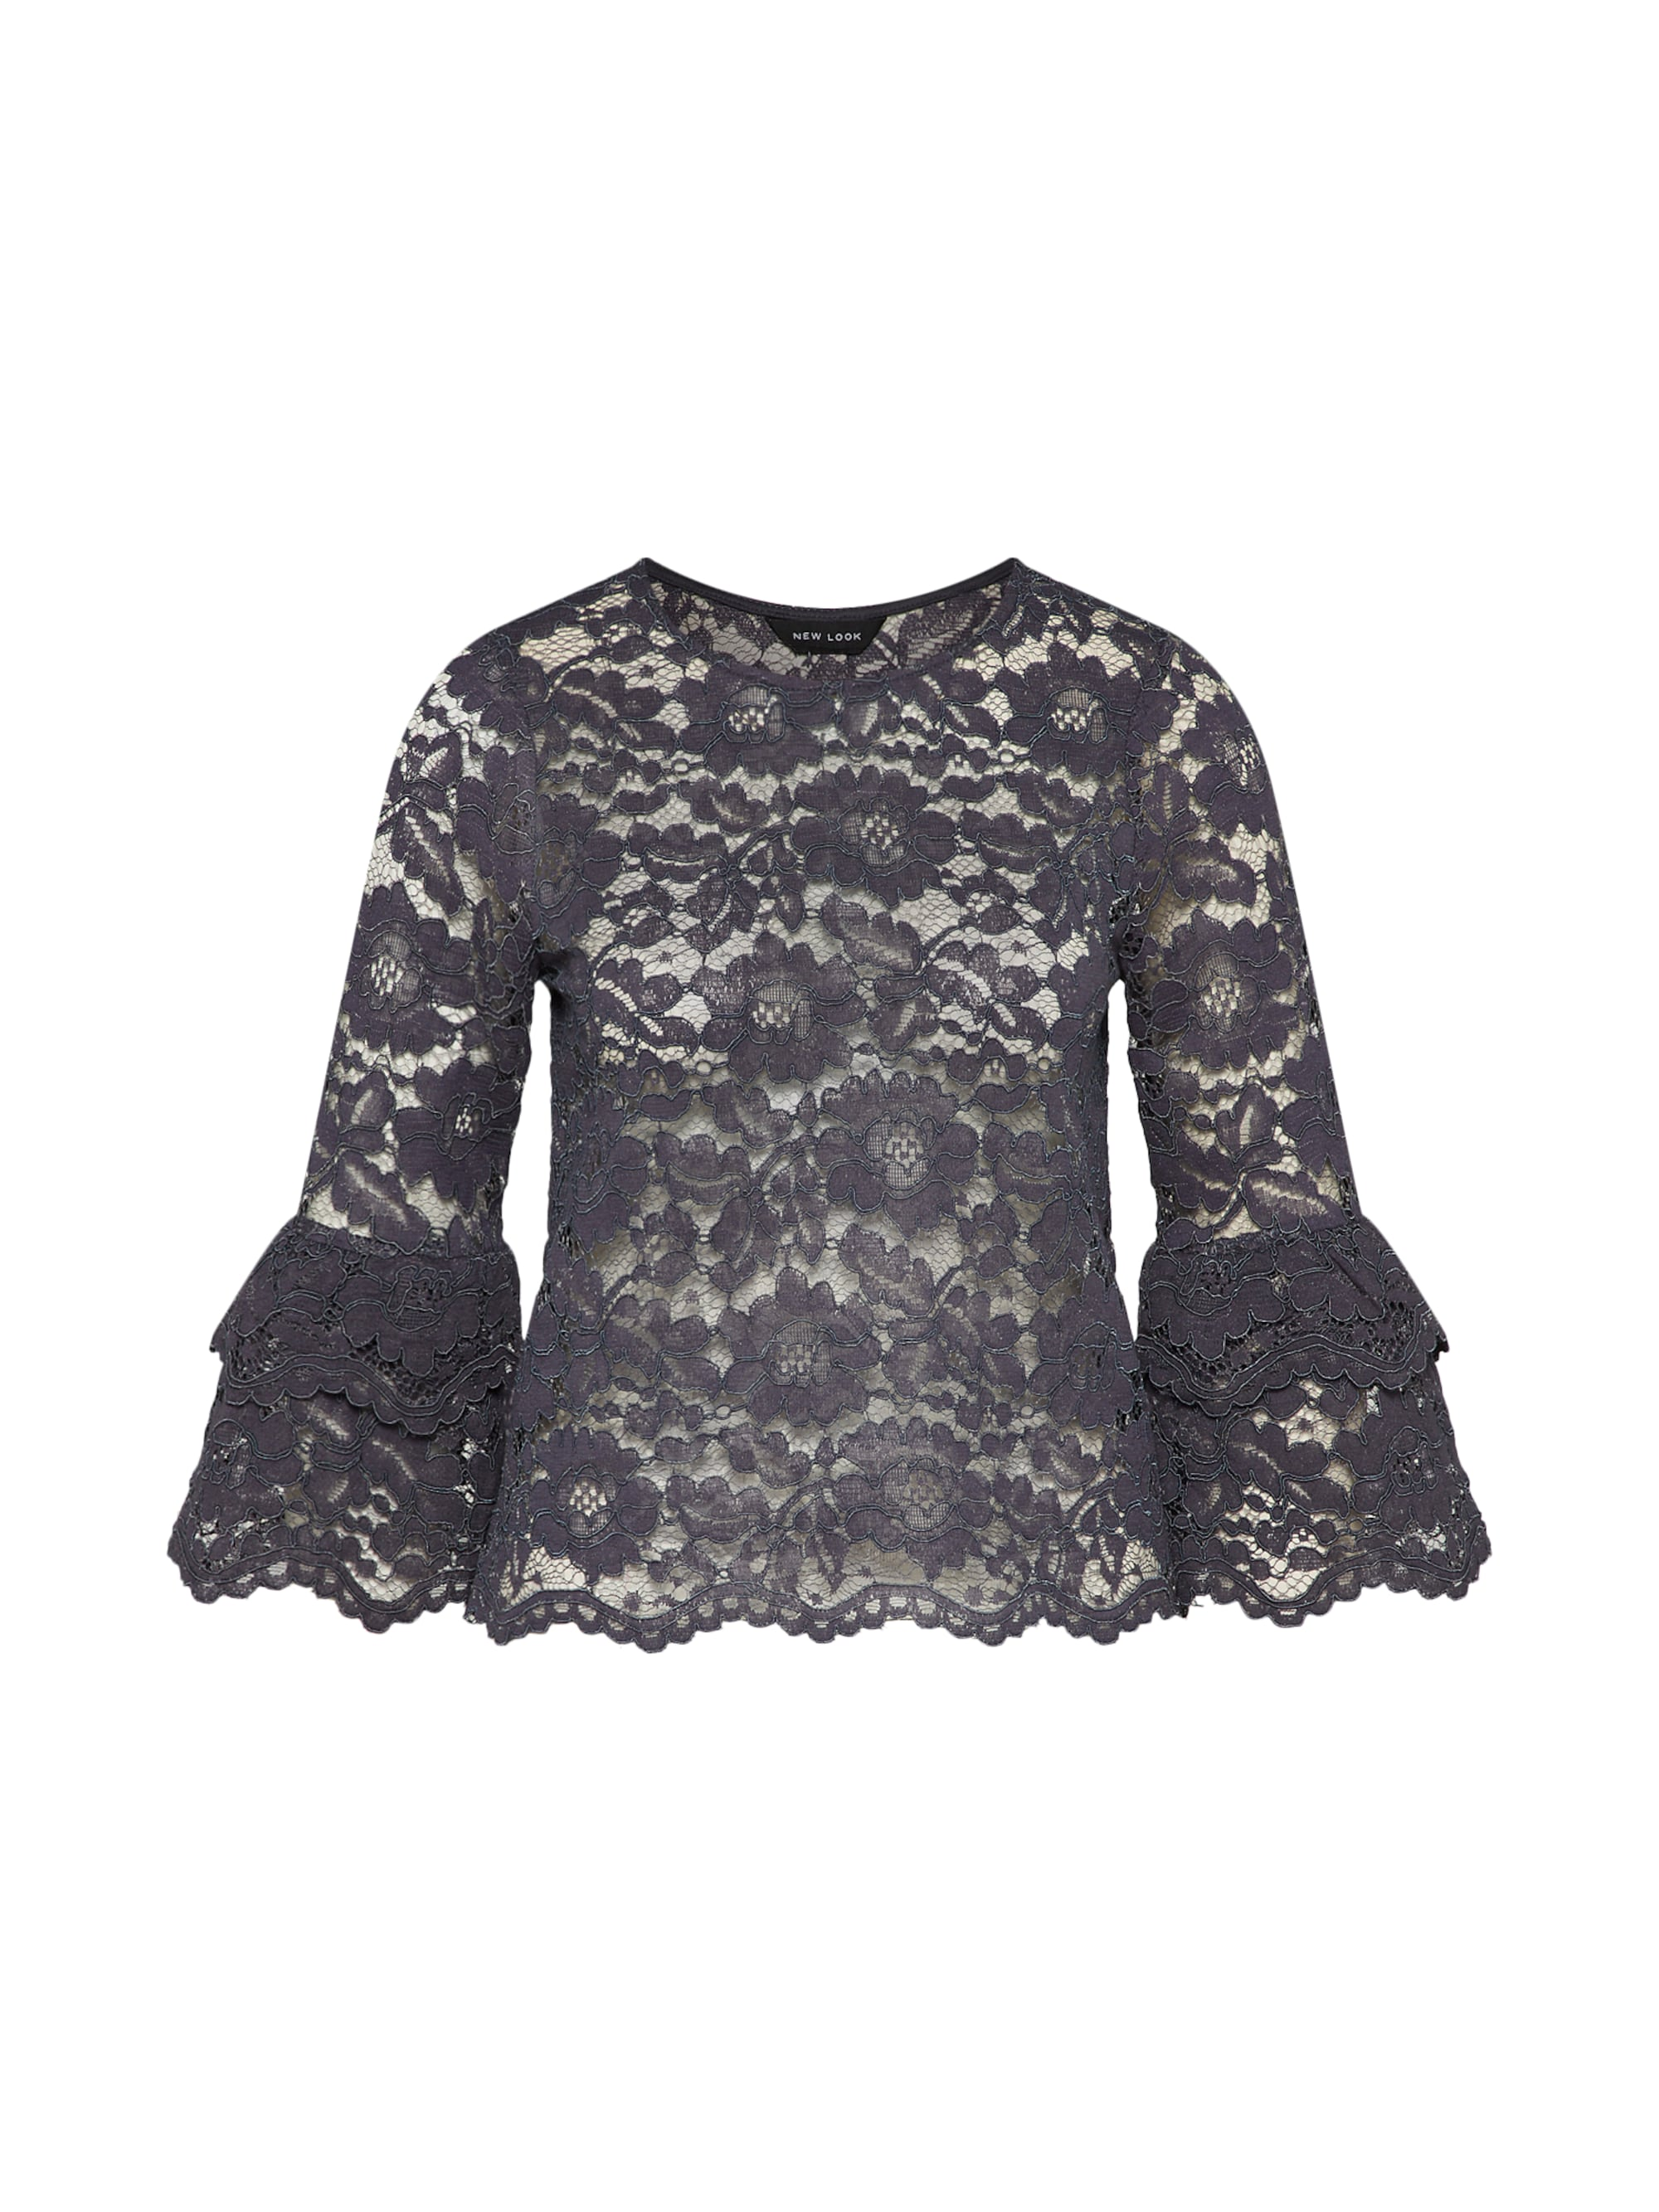 Image of Bluse ´CORDED LACE´